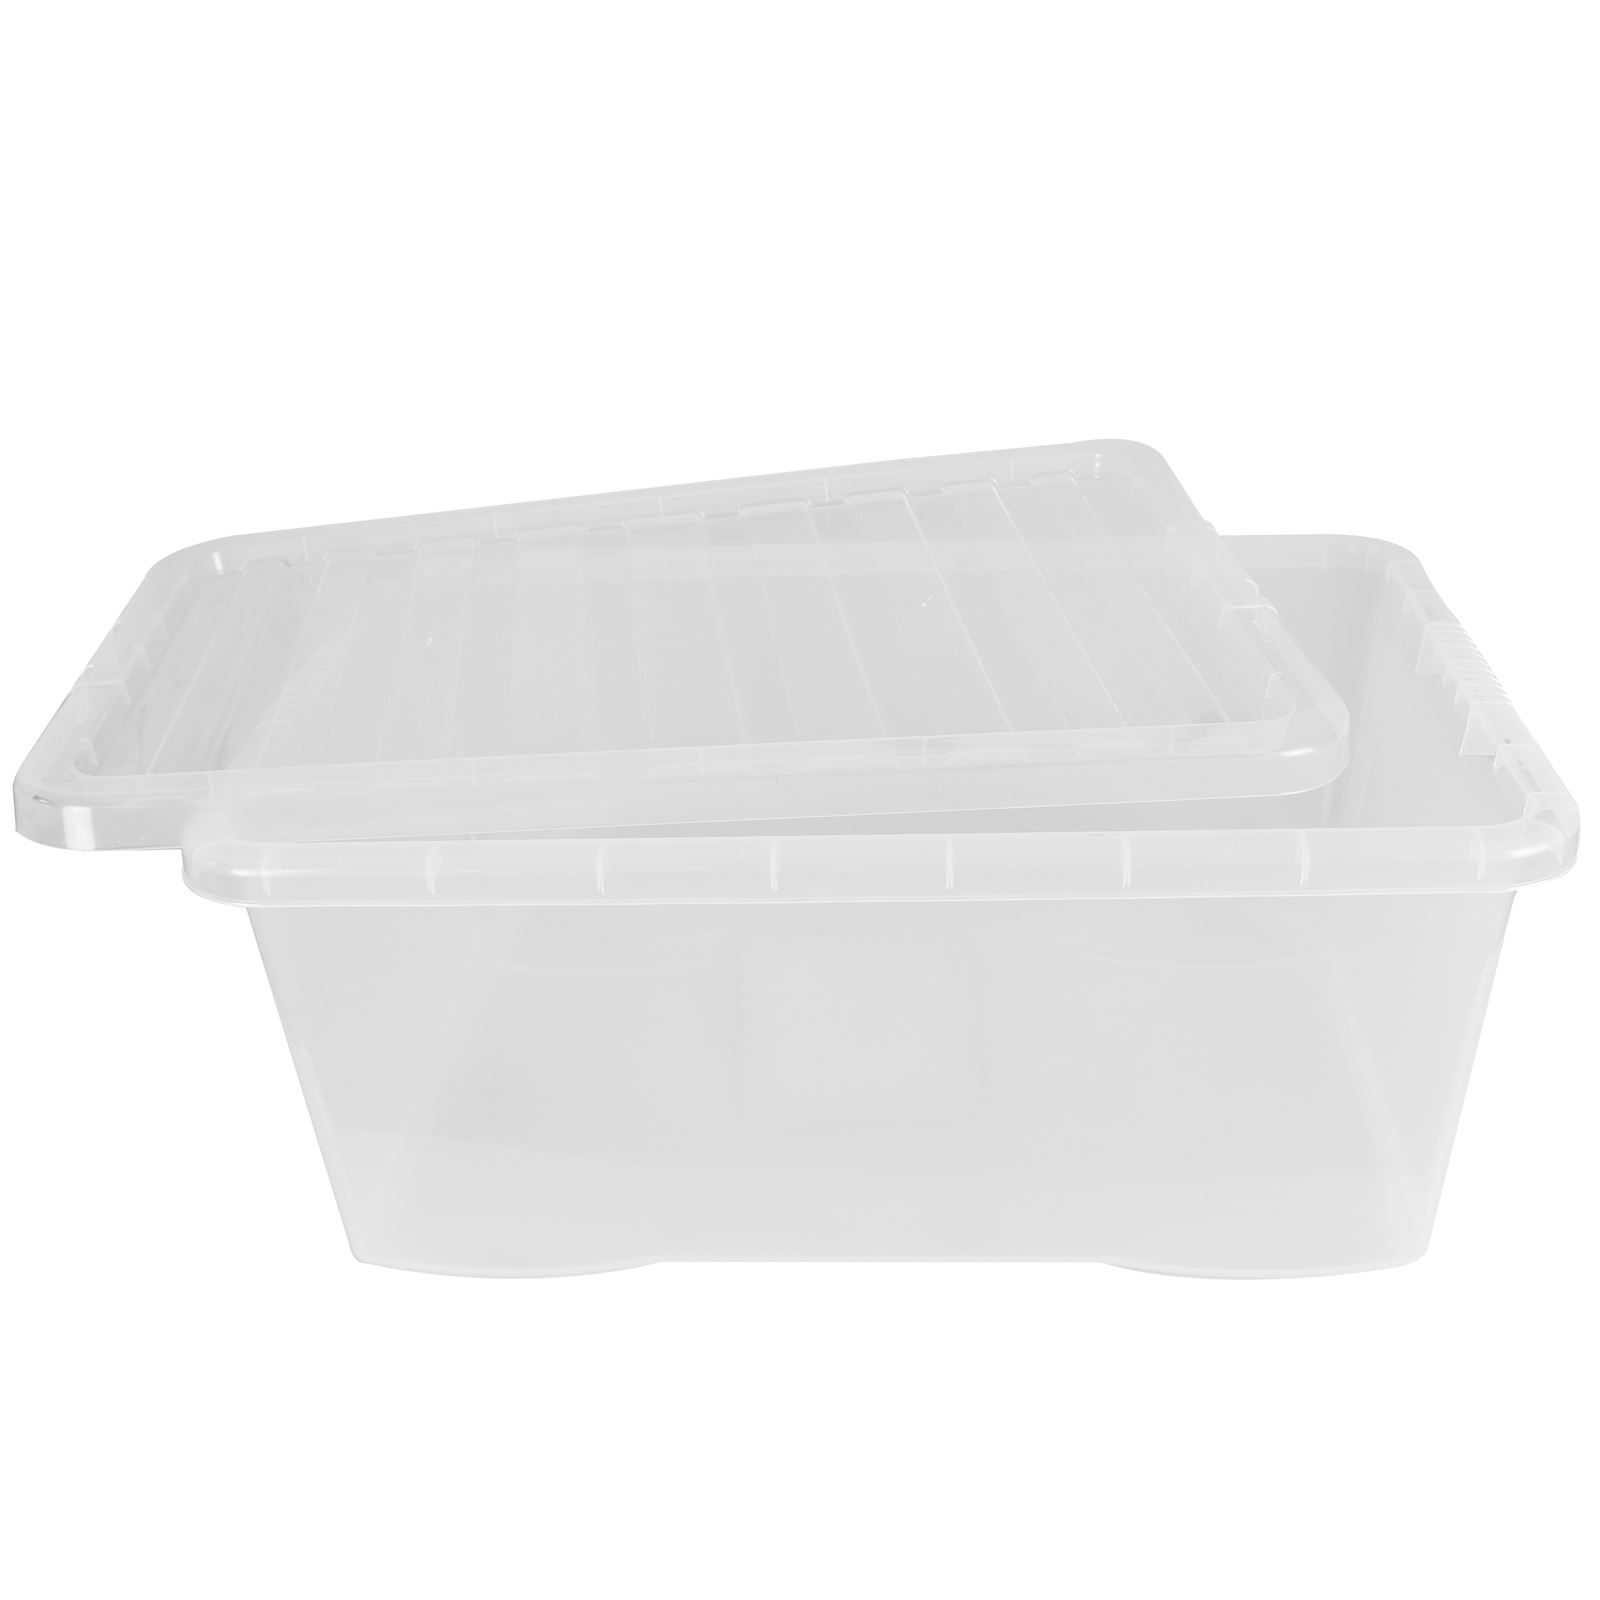 Wham-Crystal-Clear-Plastic-Storage-Box-Secure-Clip-on-Lid-Under-Bed-Space-Save thumbnail 37